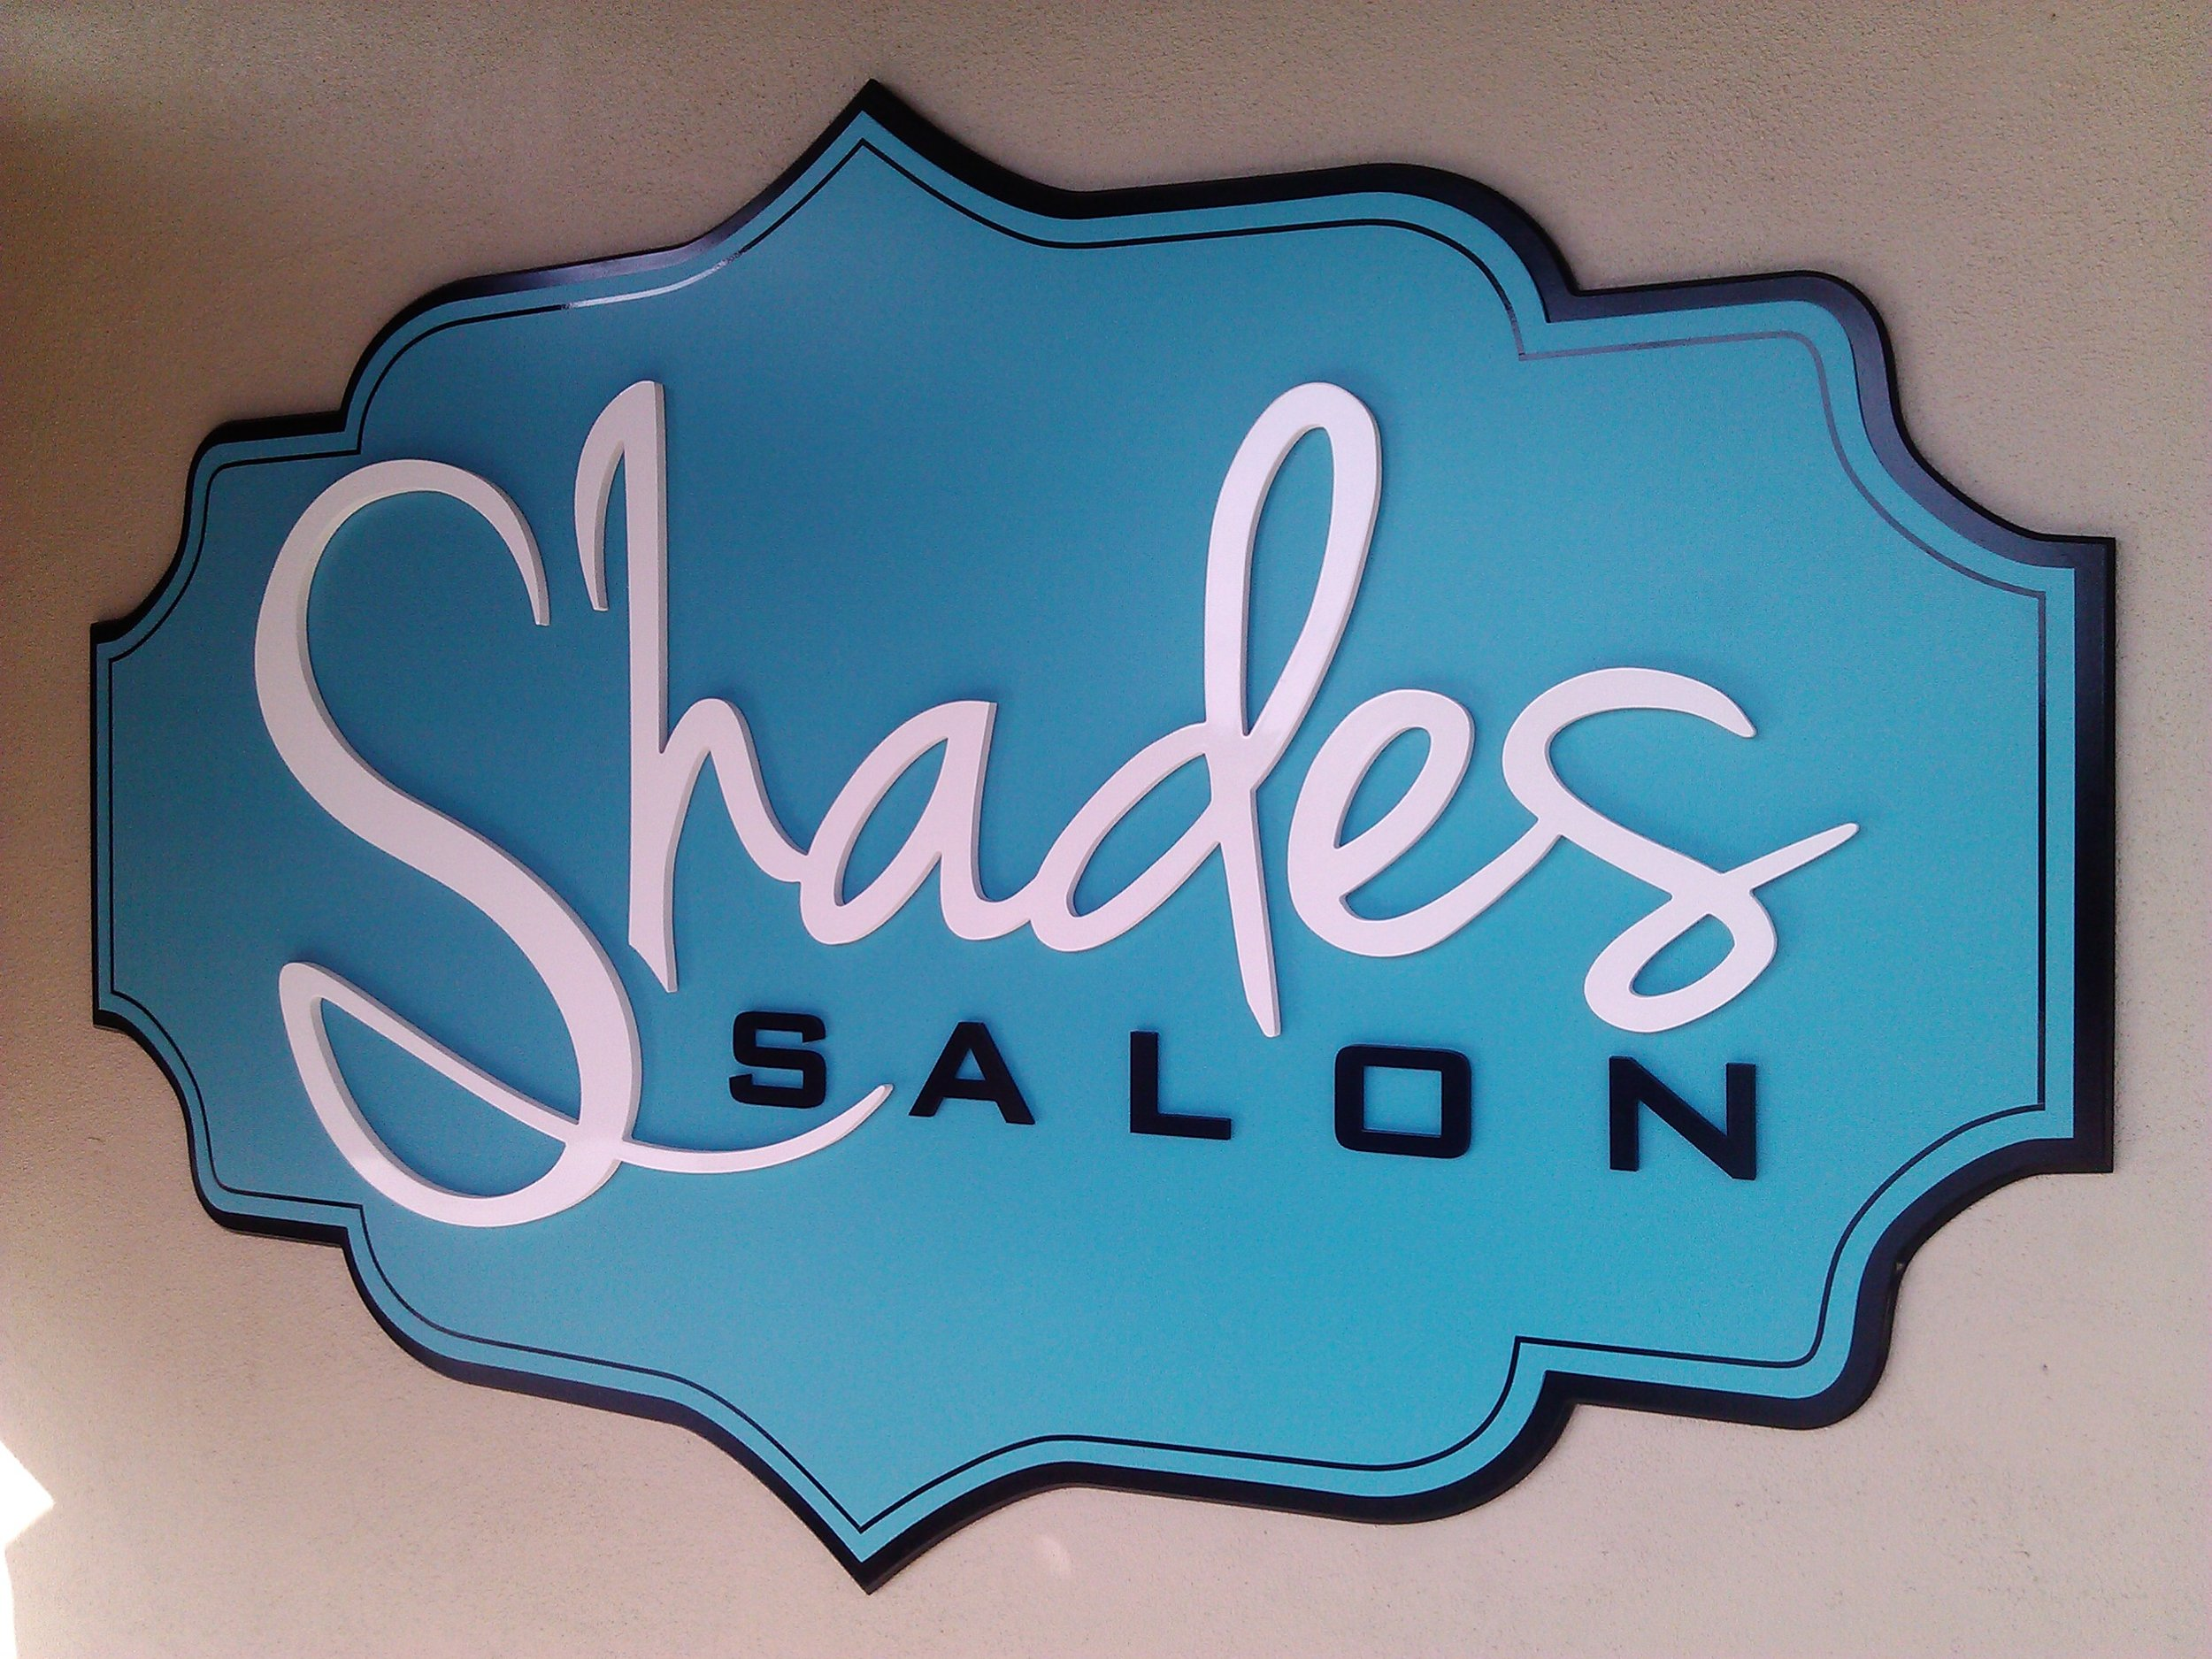 shades salon.jpg